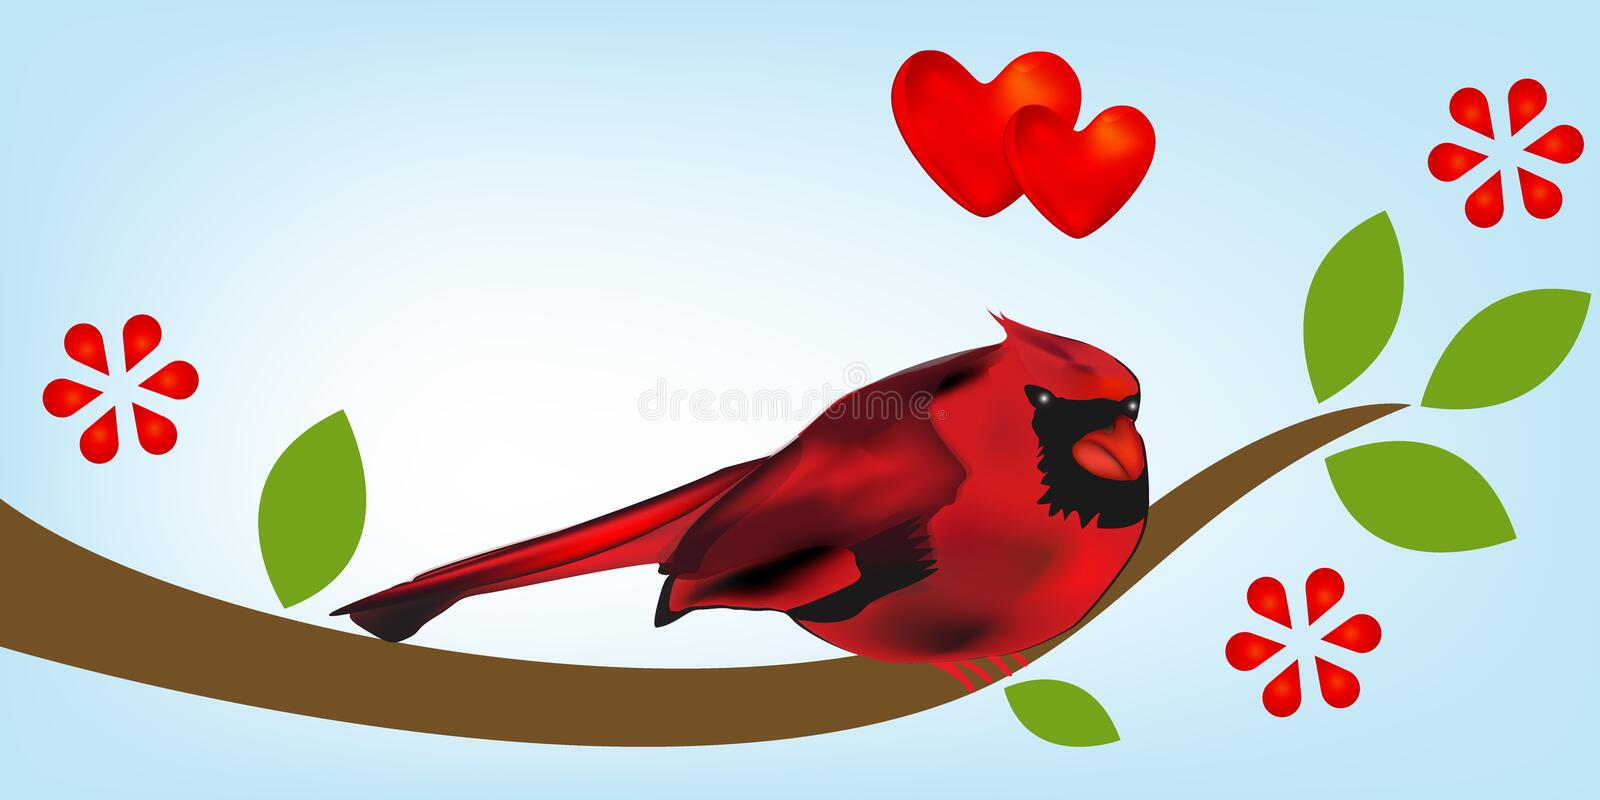 Cardinal Bird On Branch Tree Template Stock Vector Illustration Of